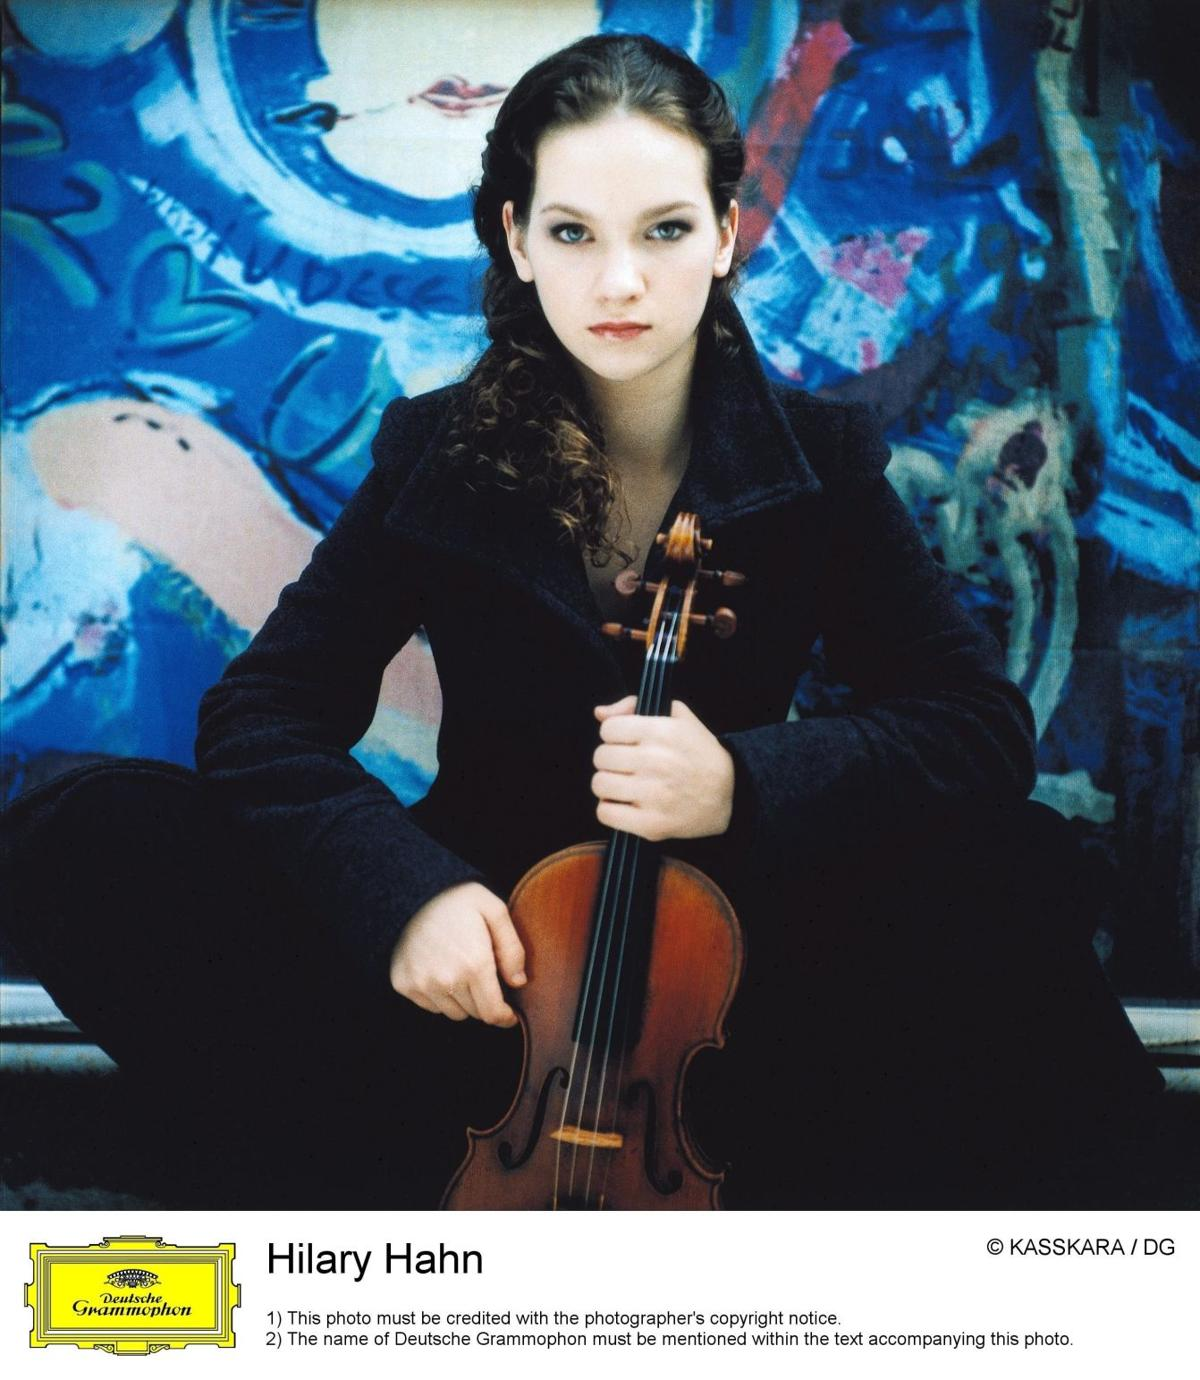 Hilary Hahn with the ISO